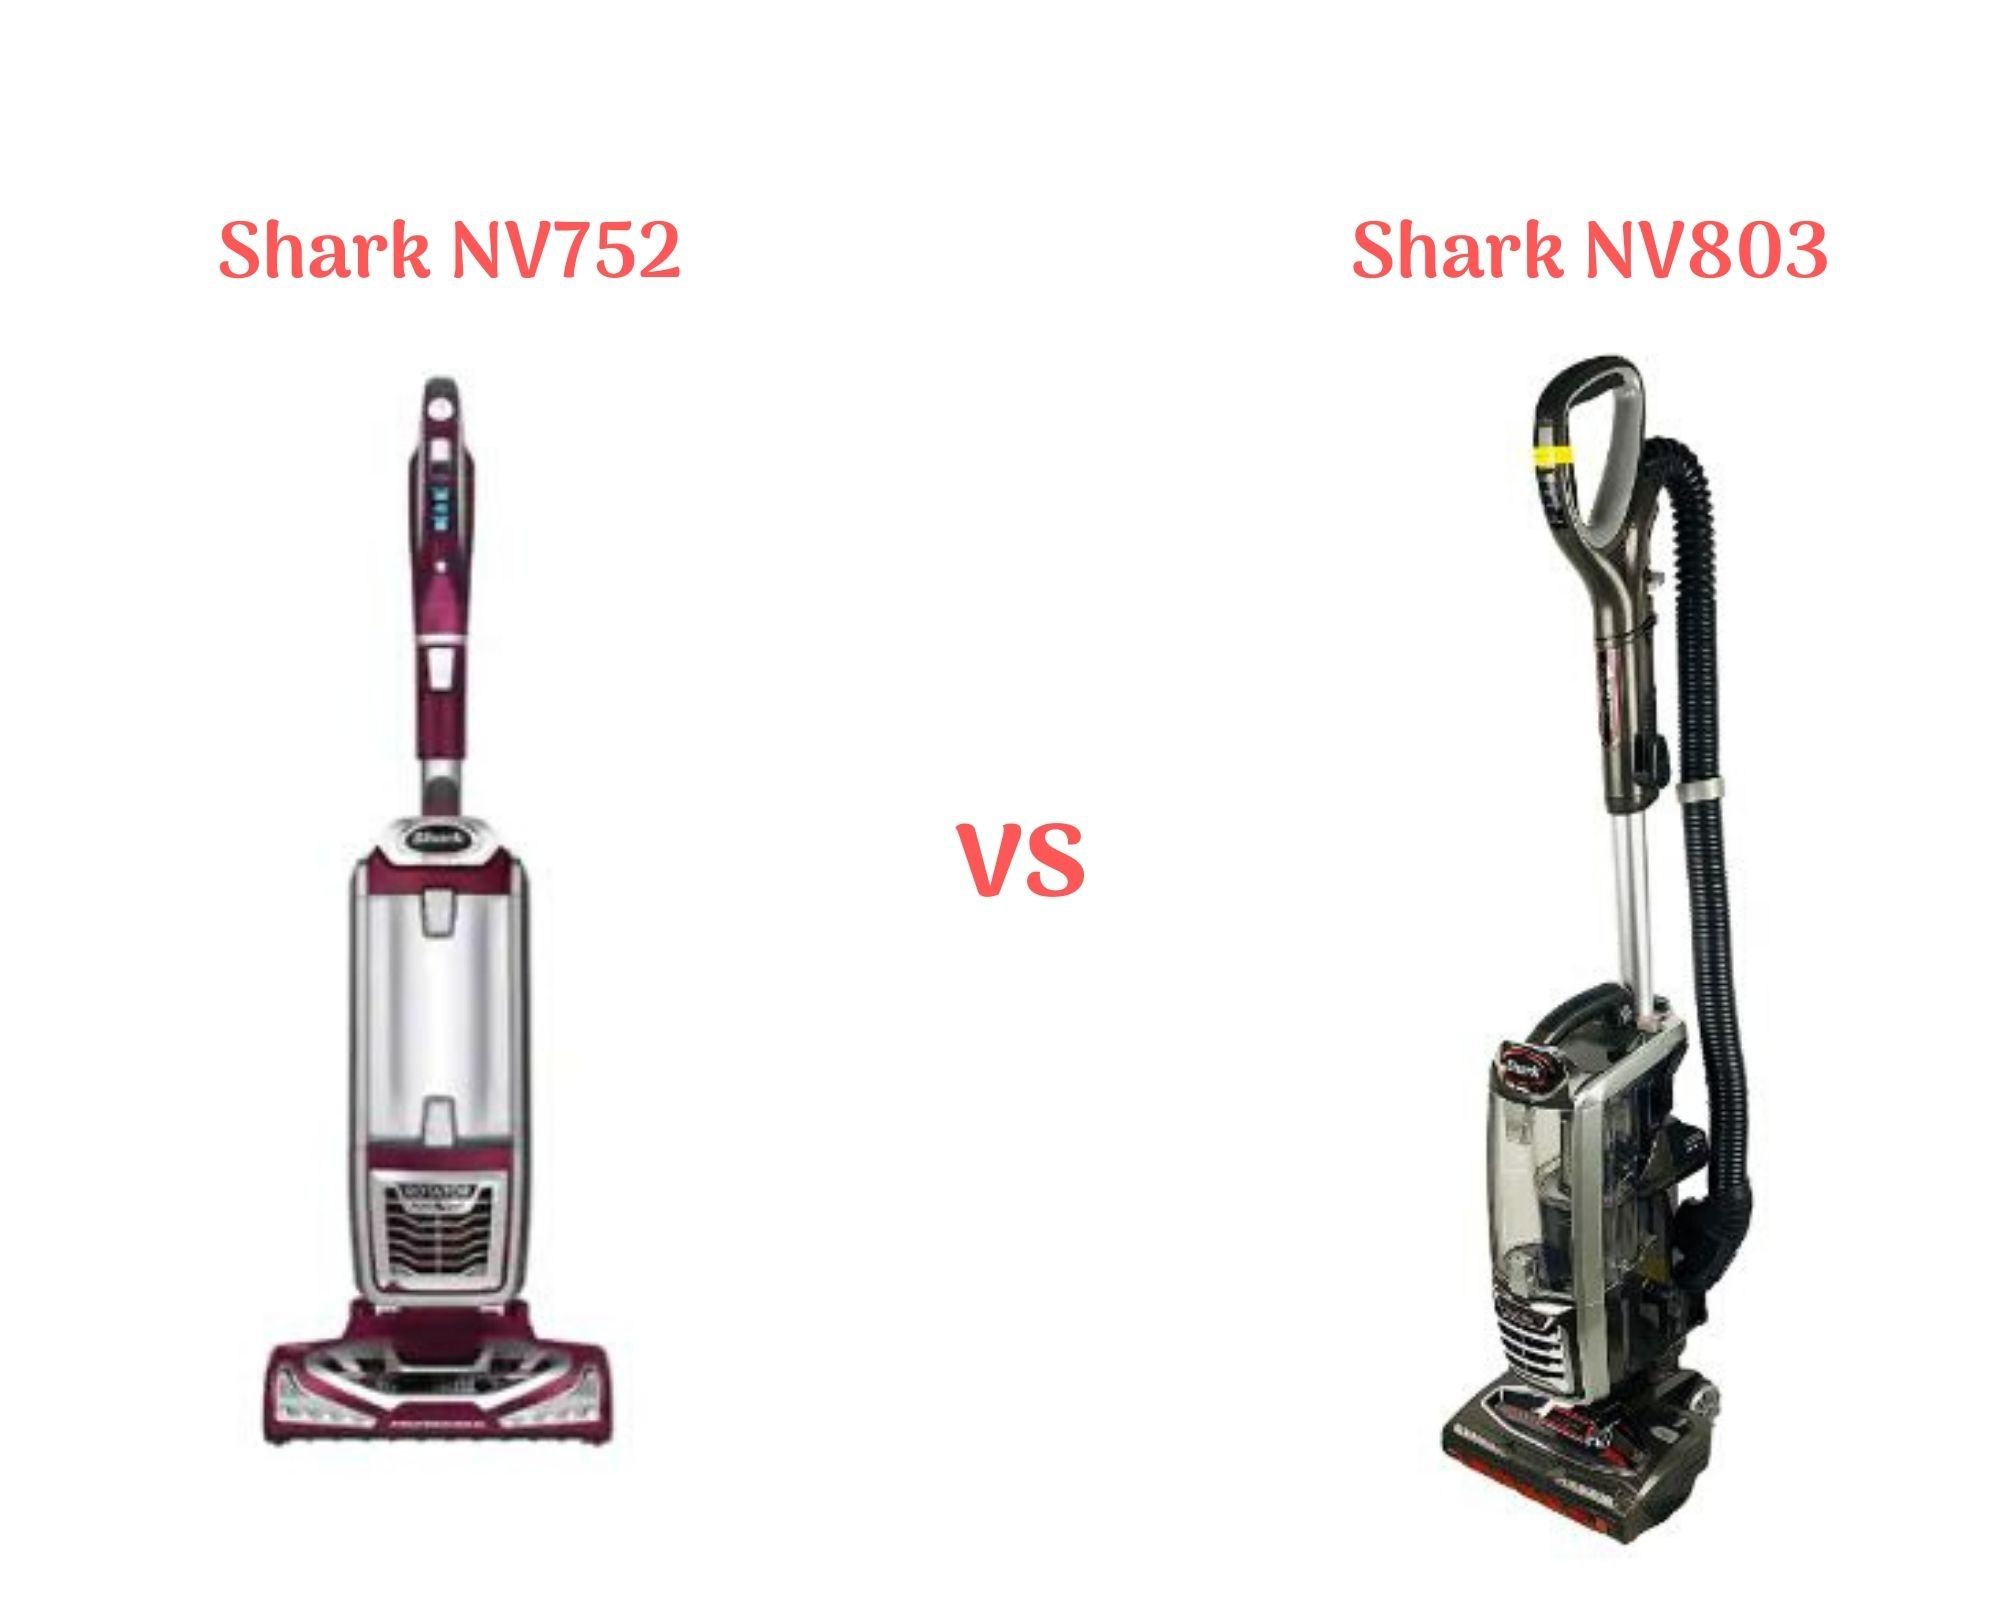 Shark NV752 vs NV803 - Shark Rotator Powered Lift-Away TruePet Upright Vacuum (NV752) vs the Shark DuoClean Powered Lift-Away Speed Upright Vacuum (NV803)